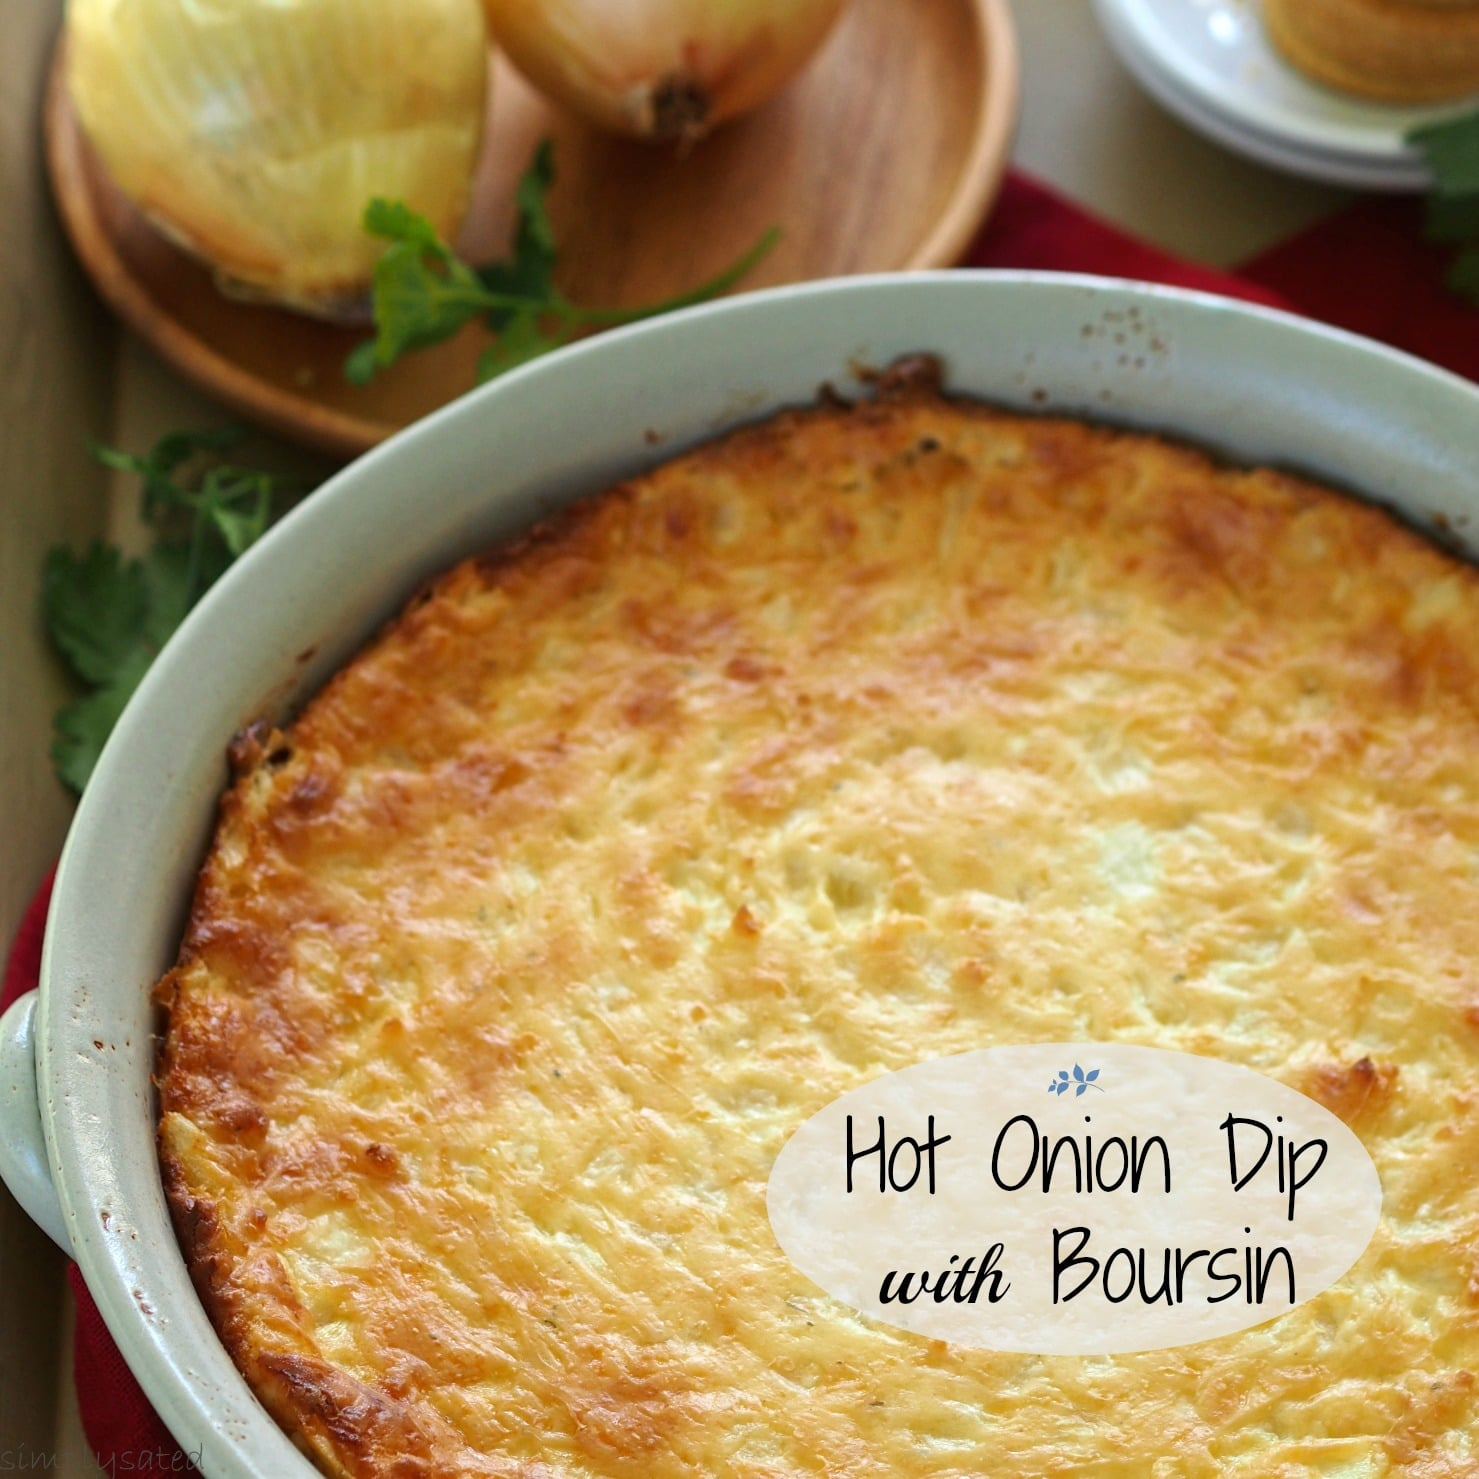 Hot Onion Dip with Boursin